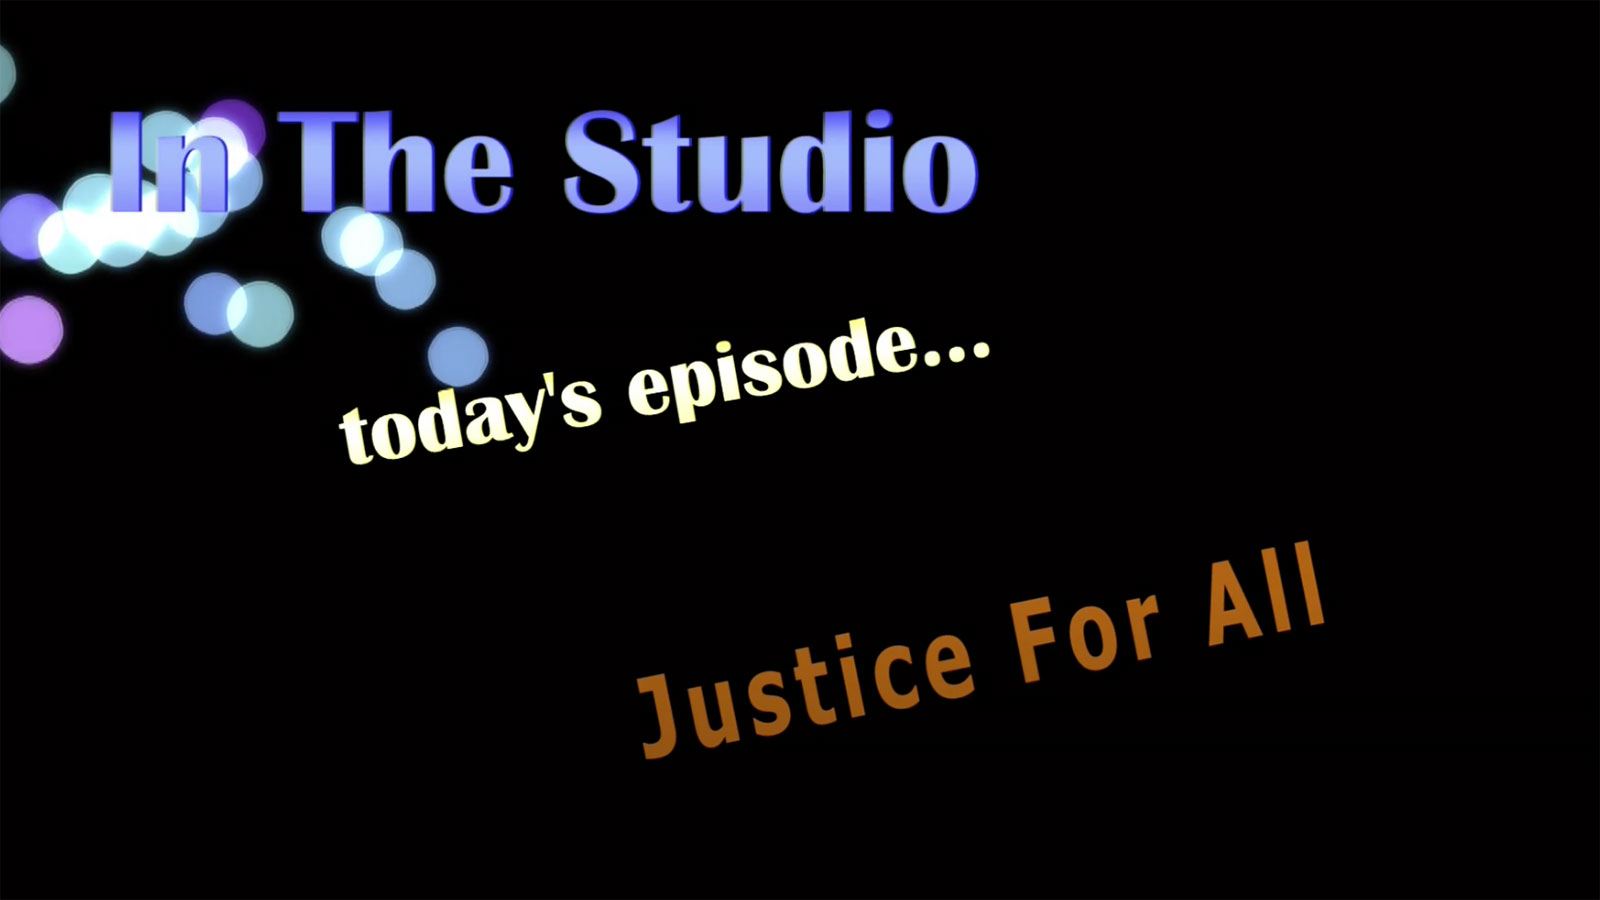 In the Studio: Justice for All